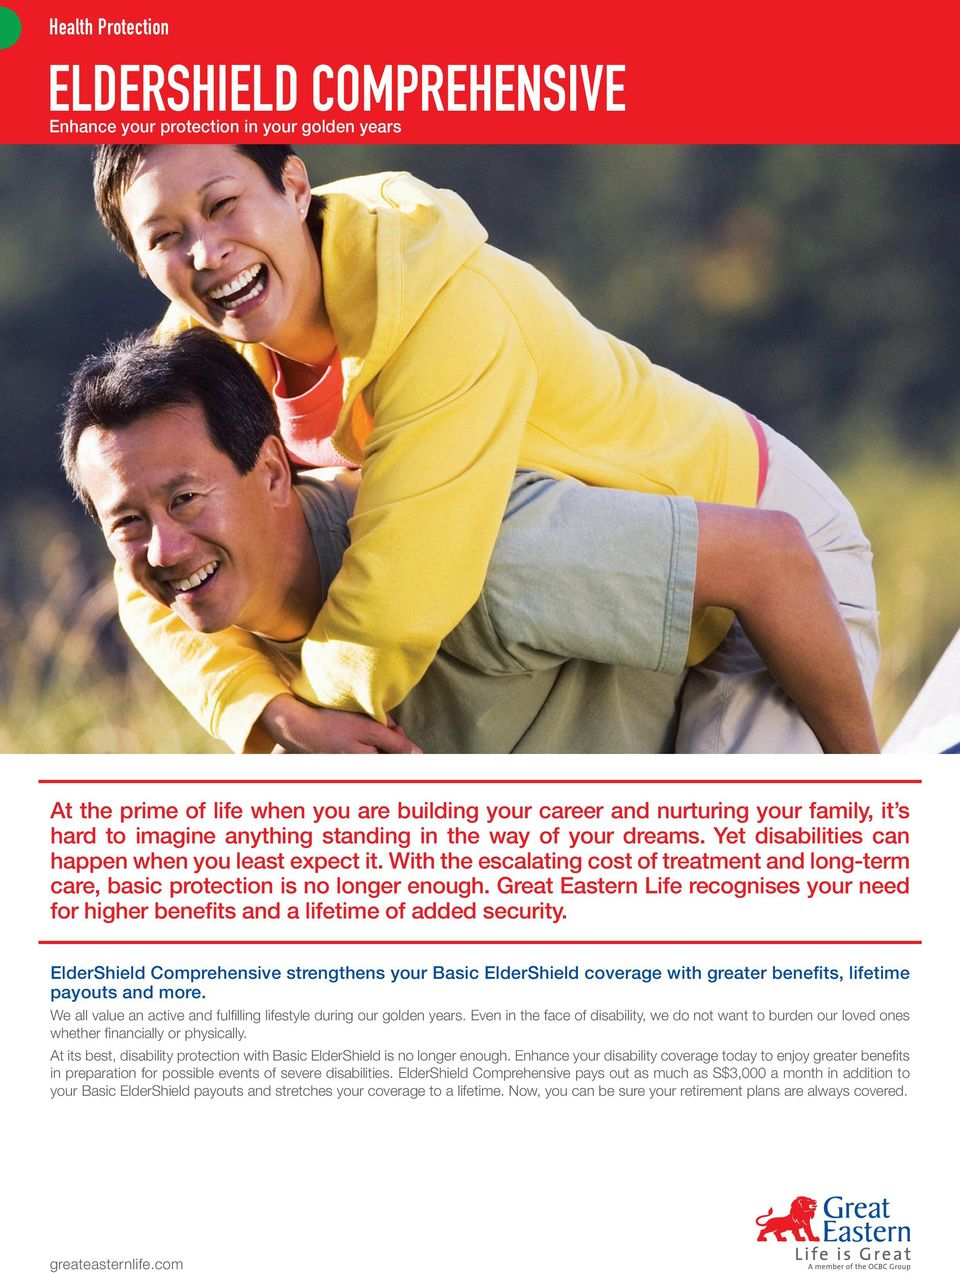 eldershield comprehensive pdfgreat eastern life recognises your need for higher benefits and a lifetime of added security